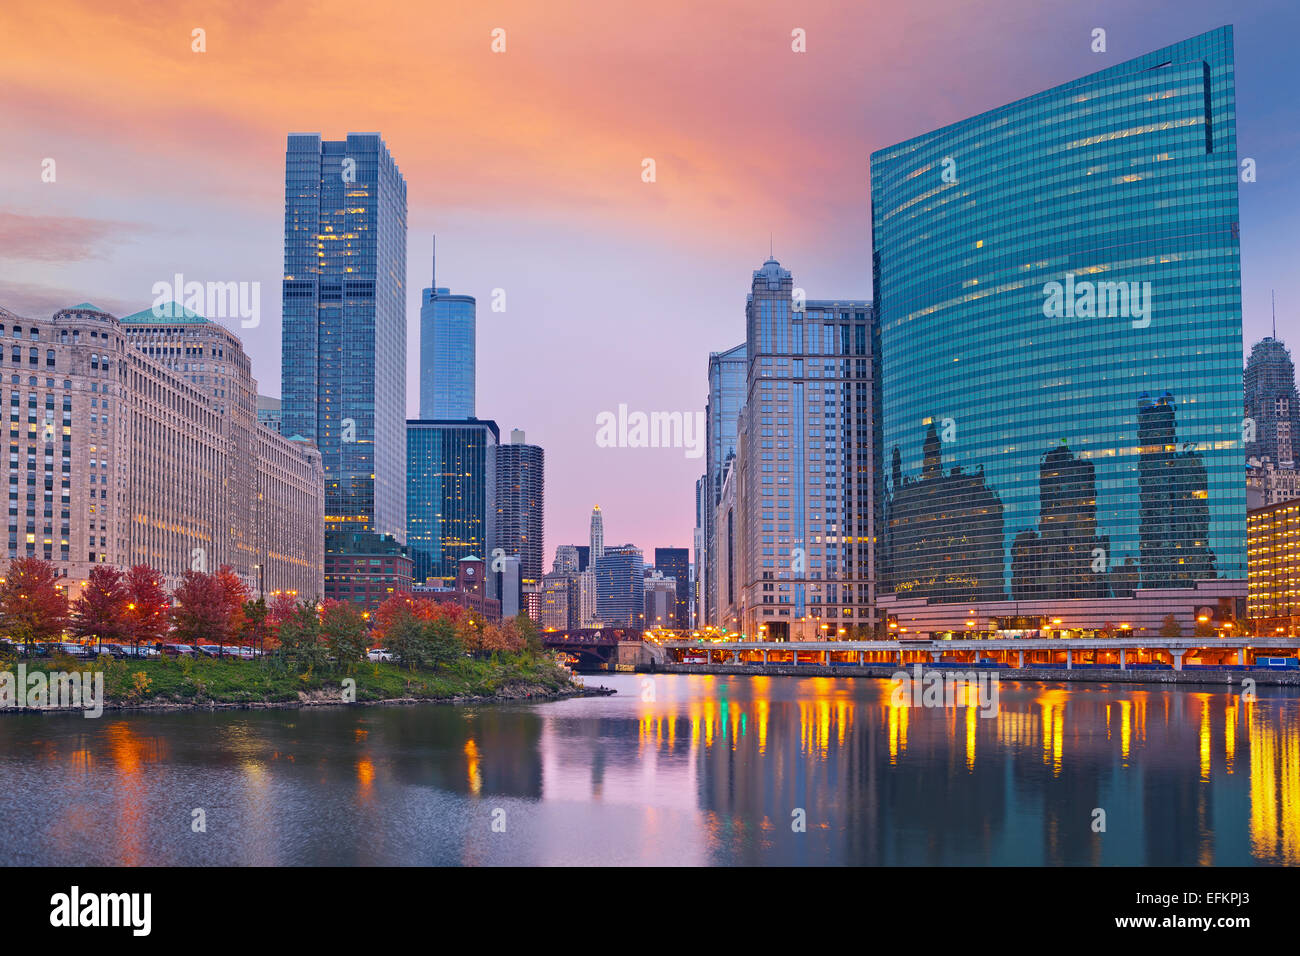 Chicago. Image of the city of Chicago during sunset. - Stock Image